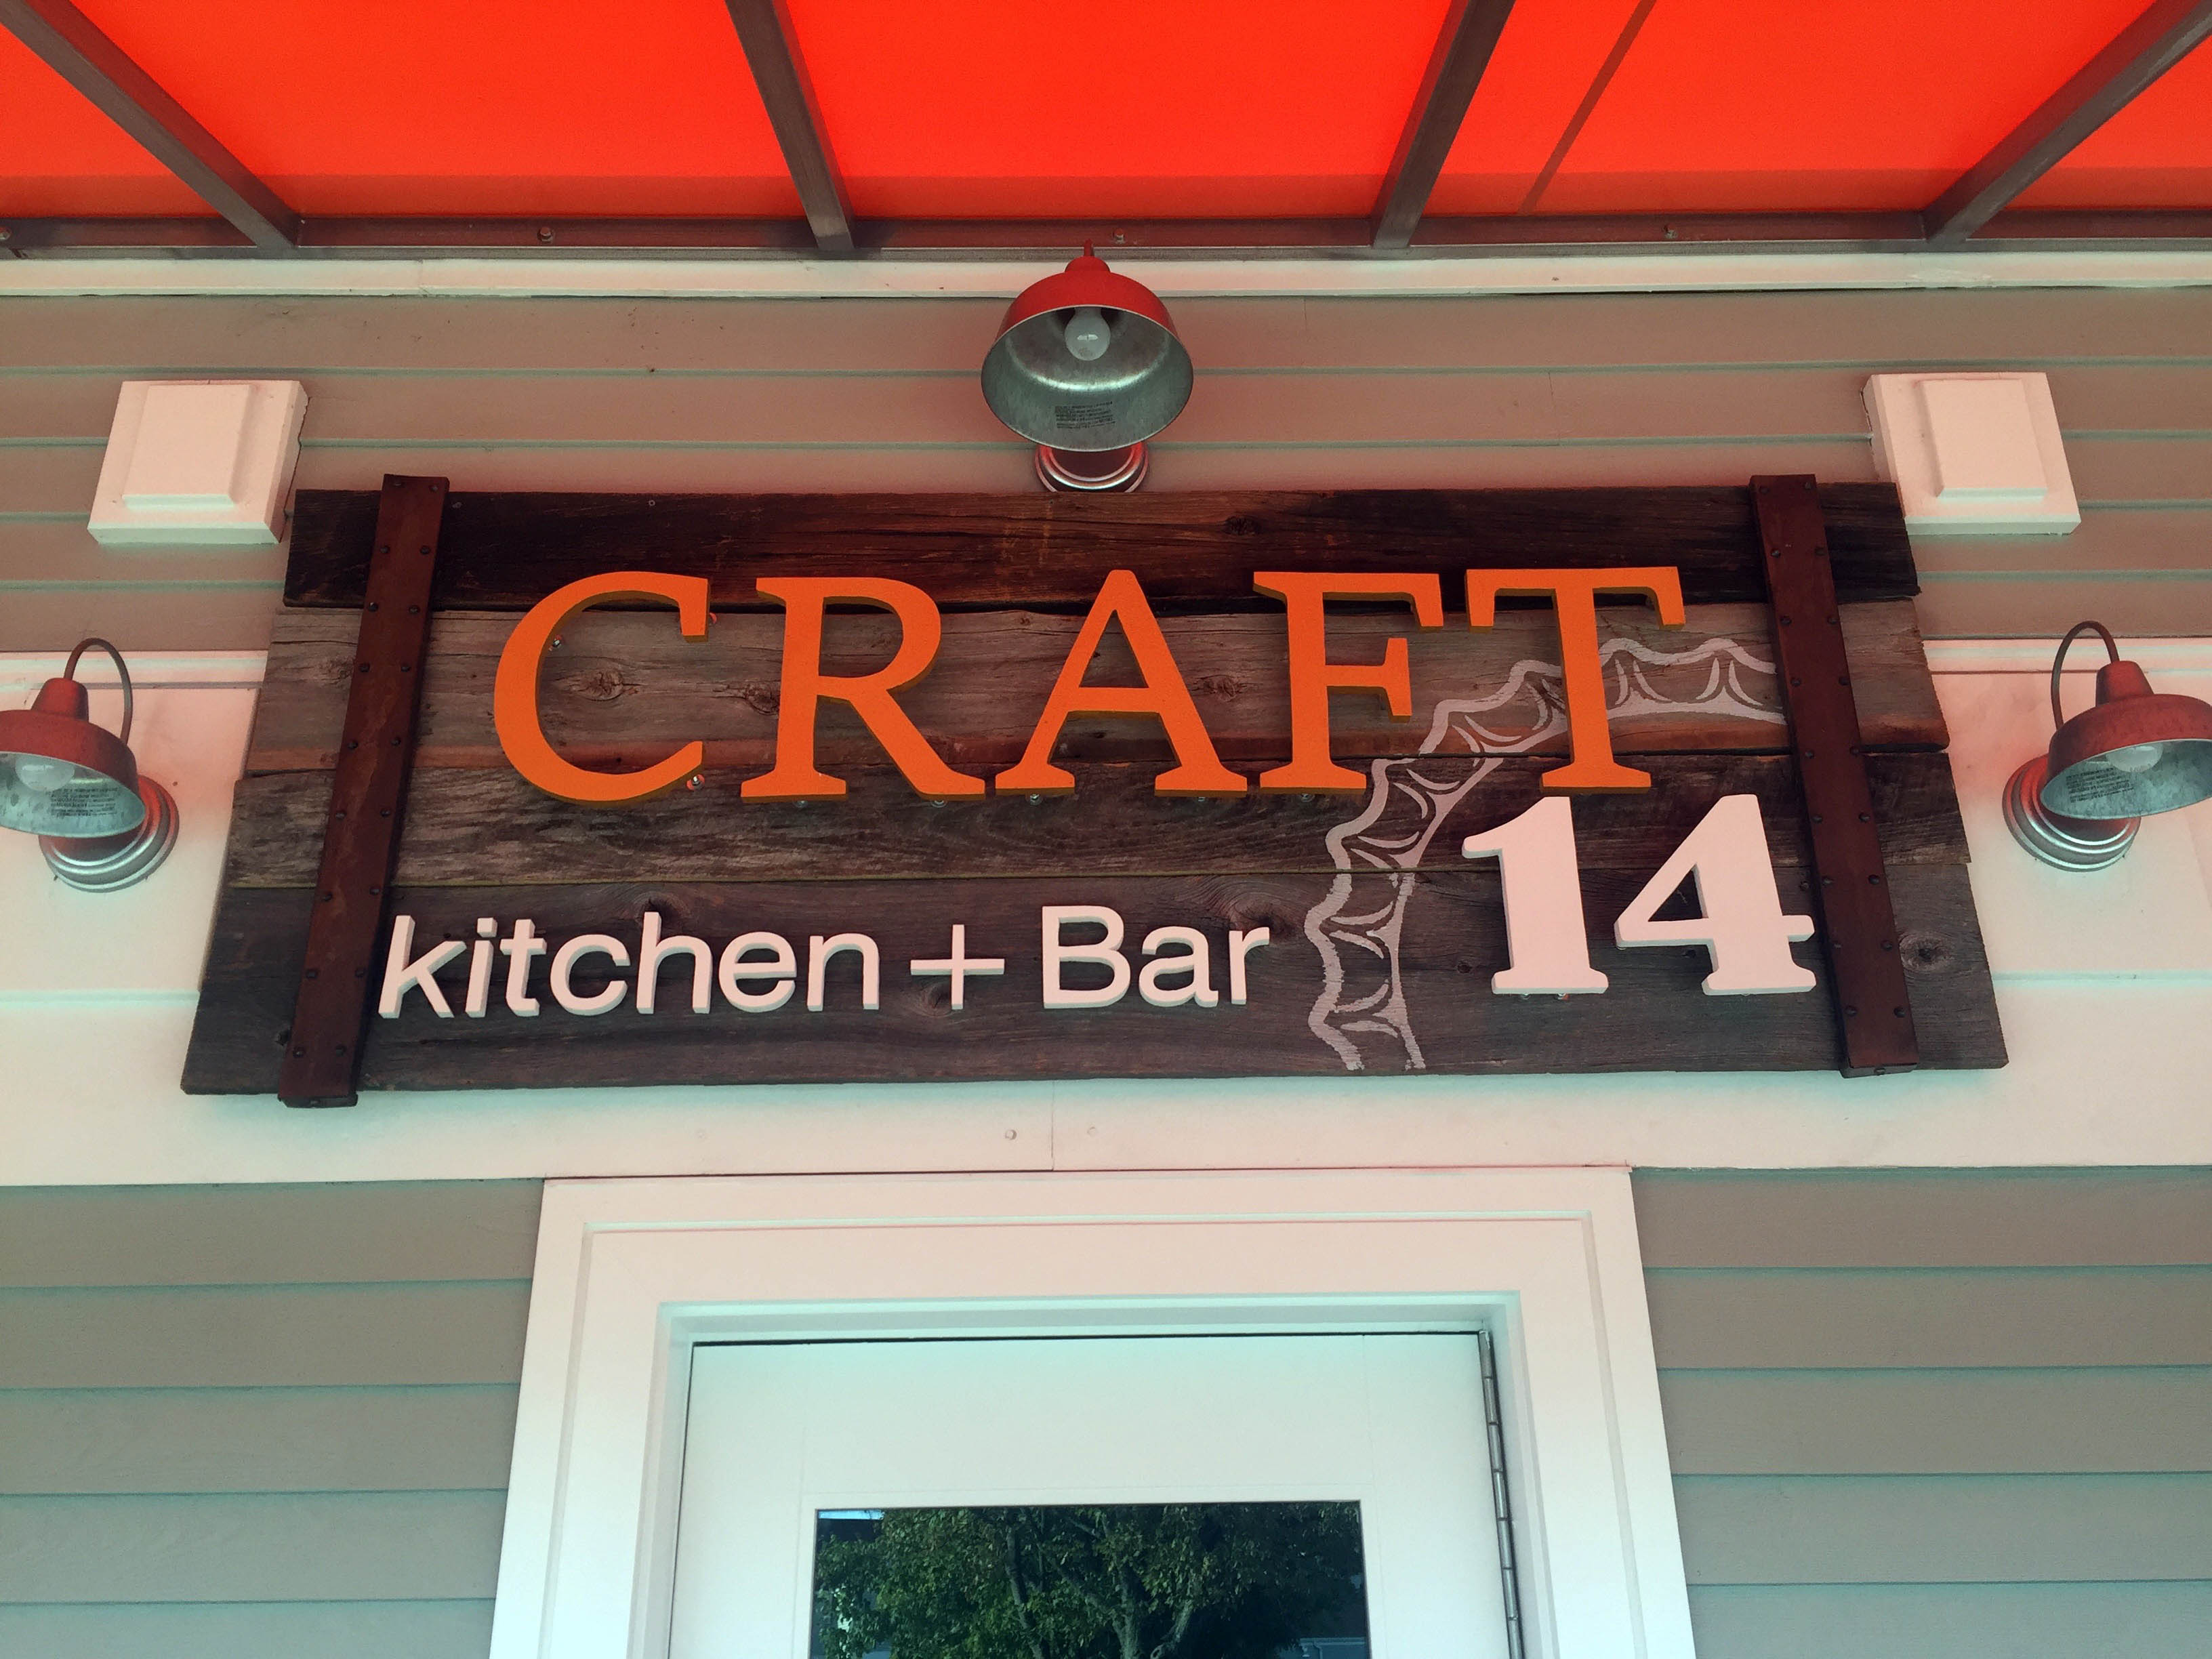 Craft 14; New Restaurant in Wilton, CT 06897